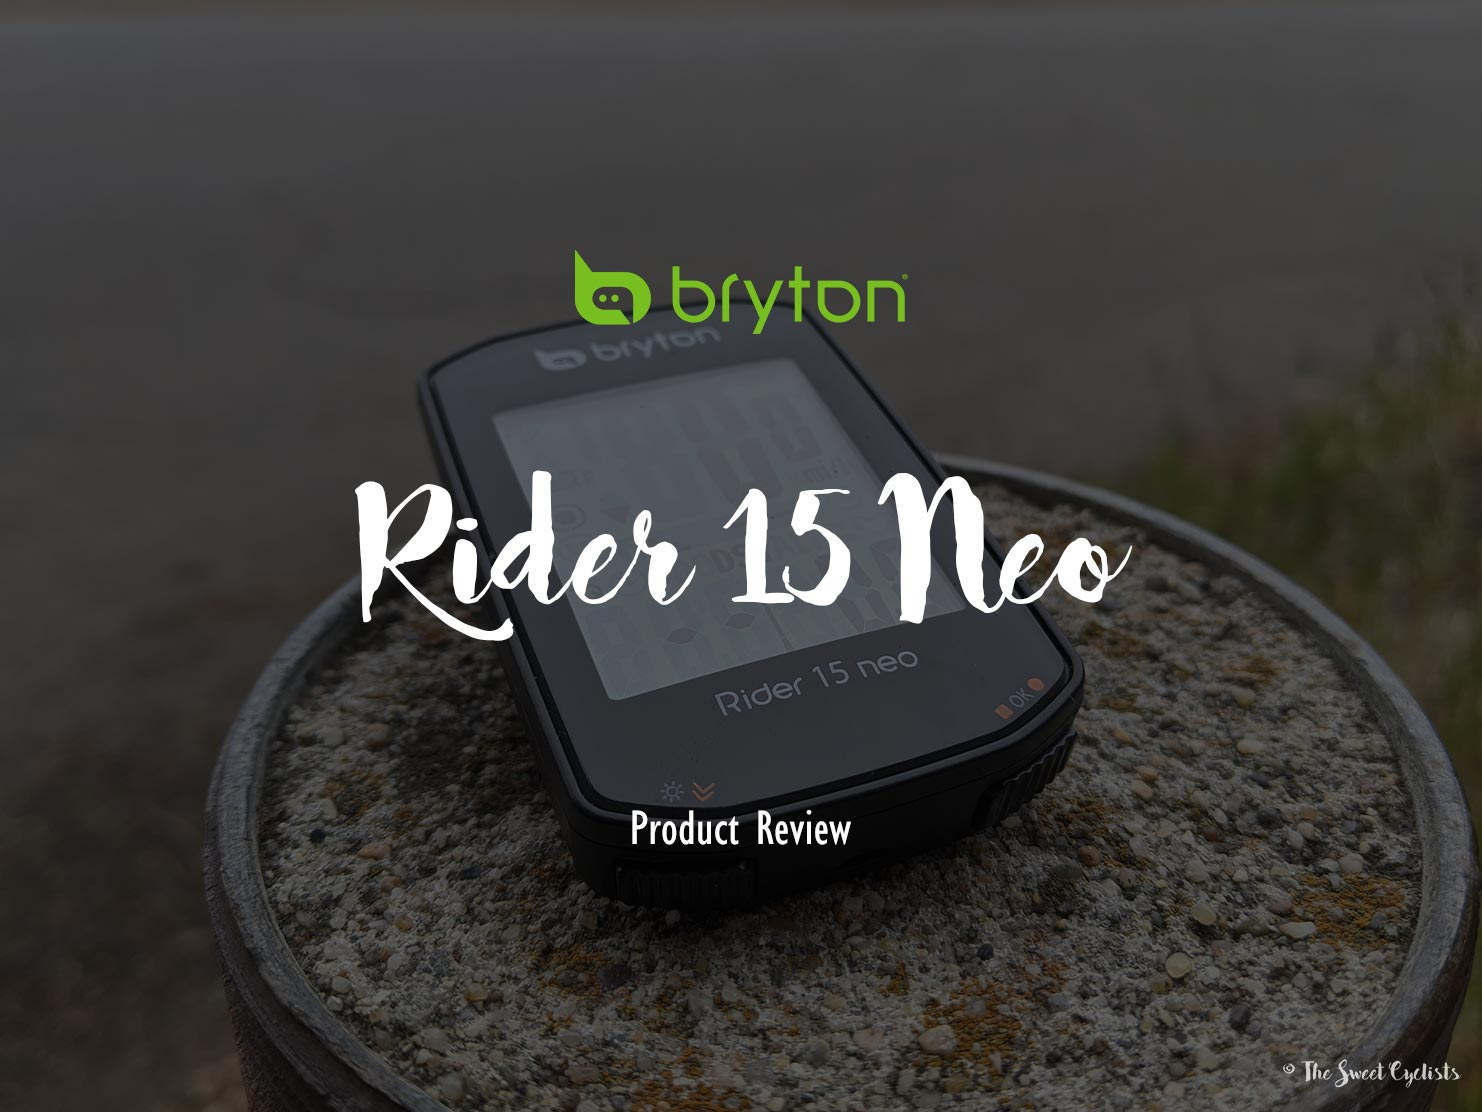 Bryton upgrades their most affordable GPS computer